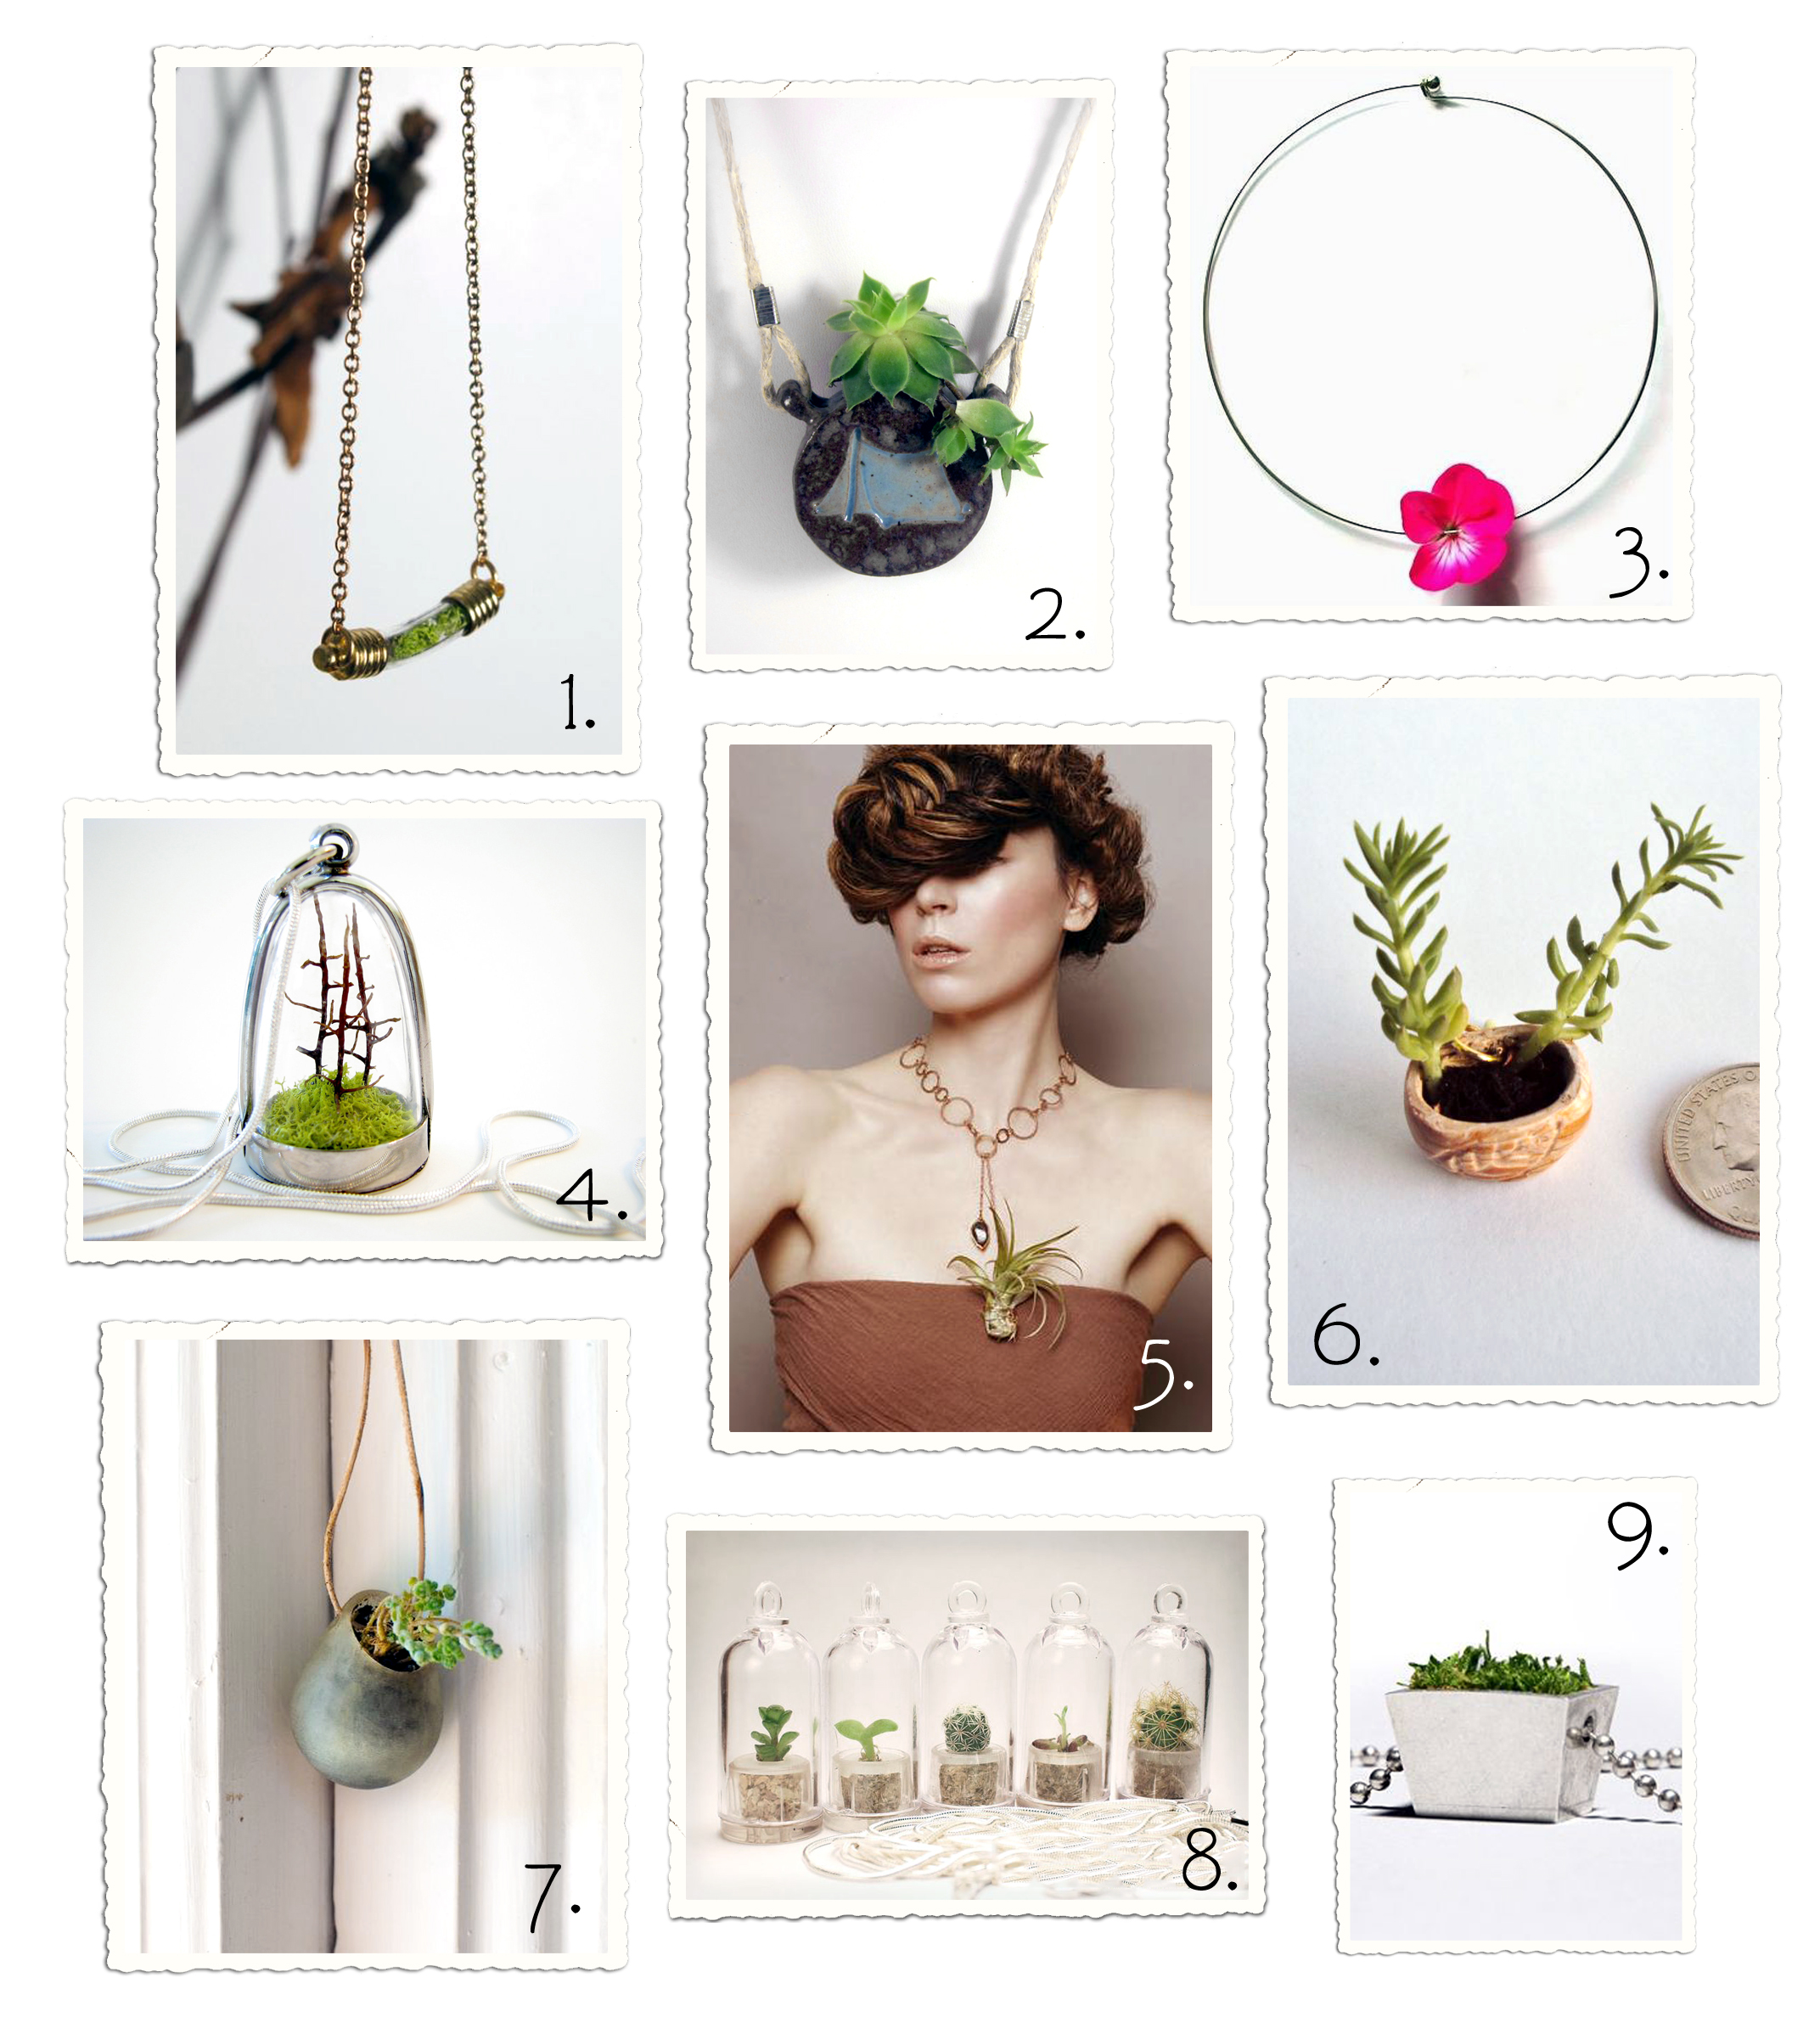 Green jewelry designs with real plants